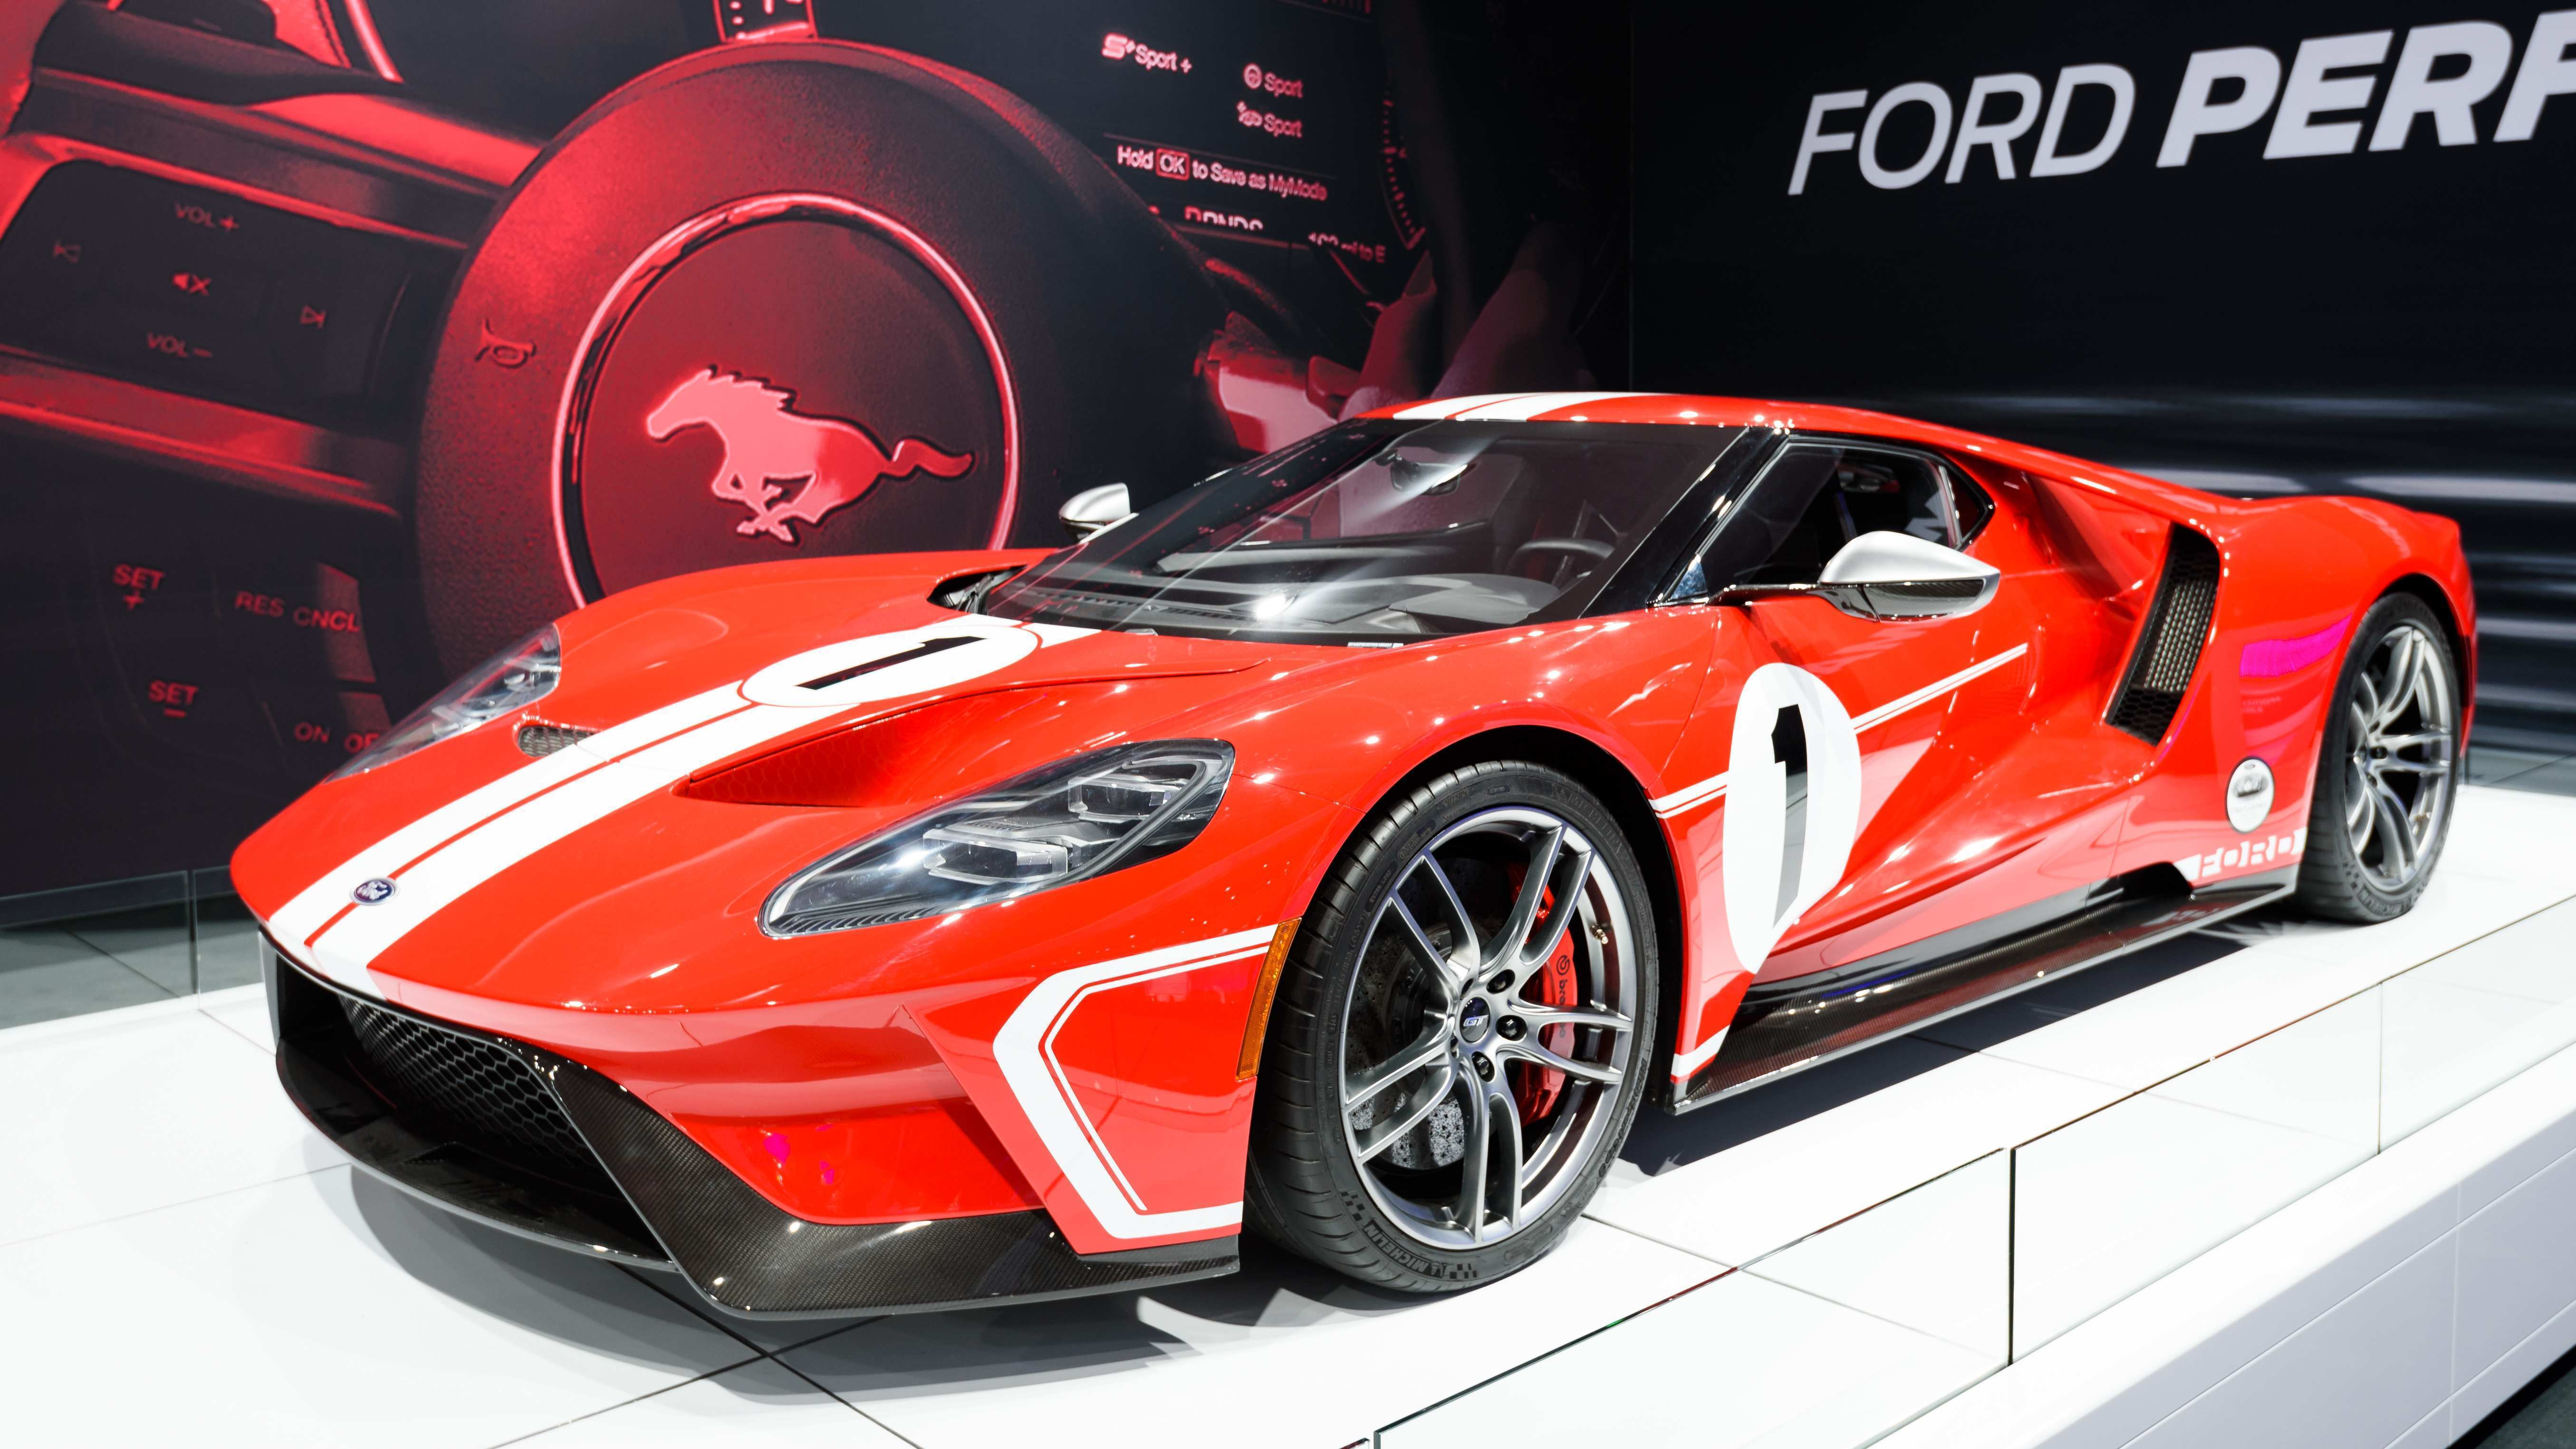 21 New 2020 Ford Gt Supercar Price And Release Date